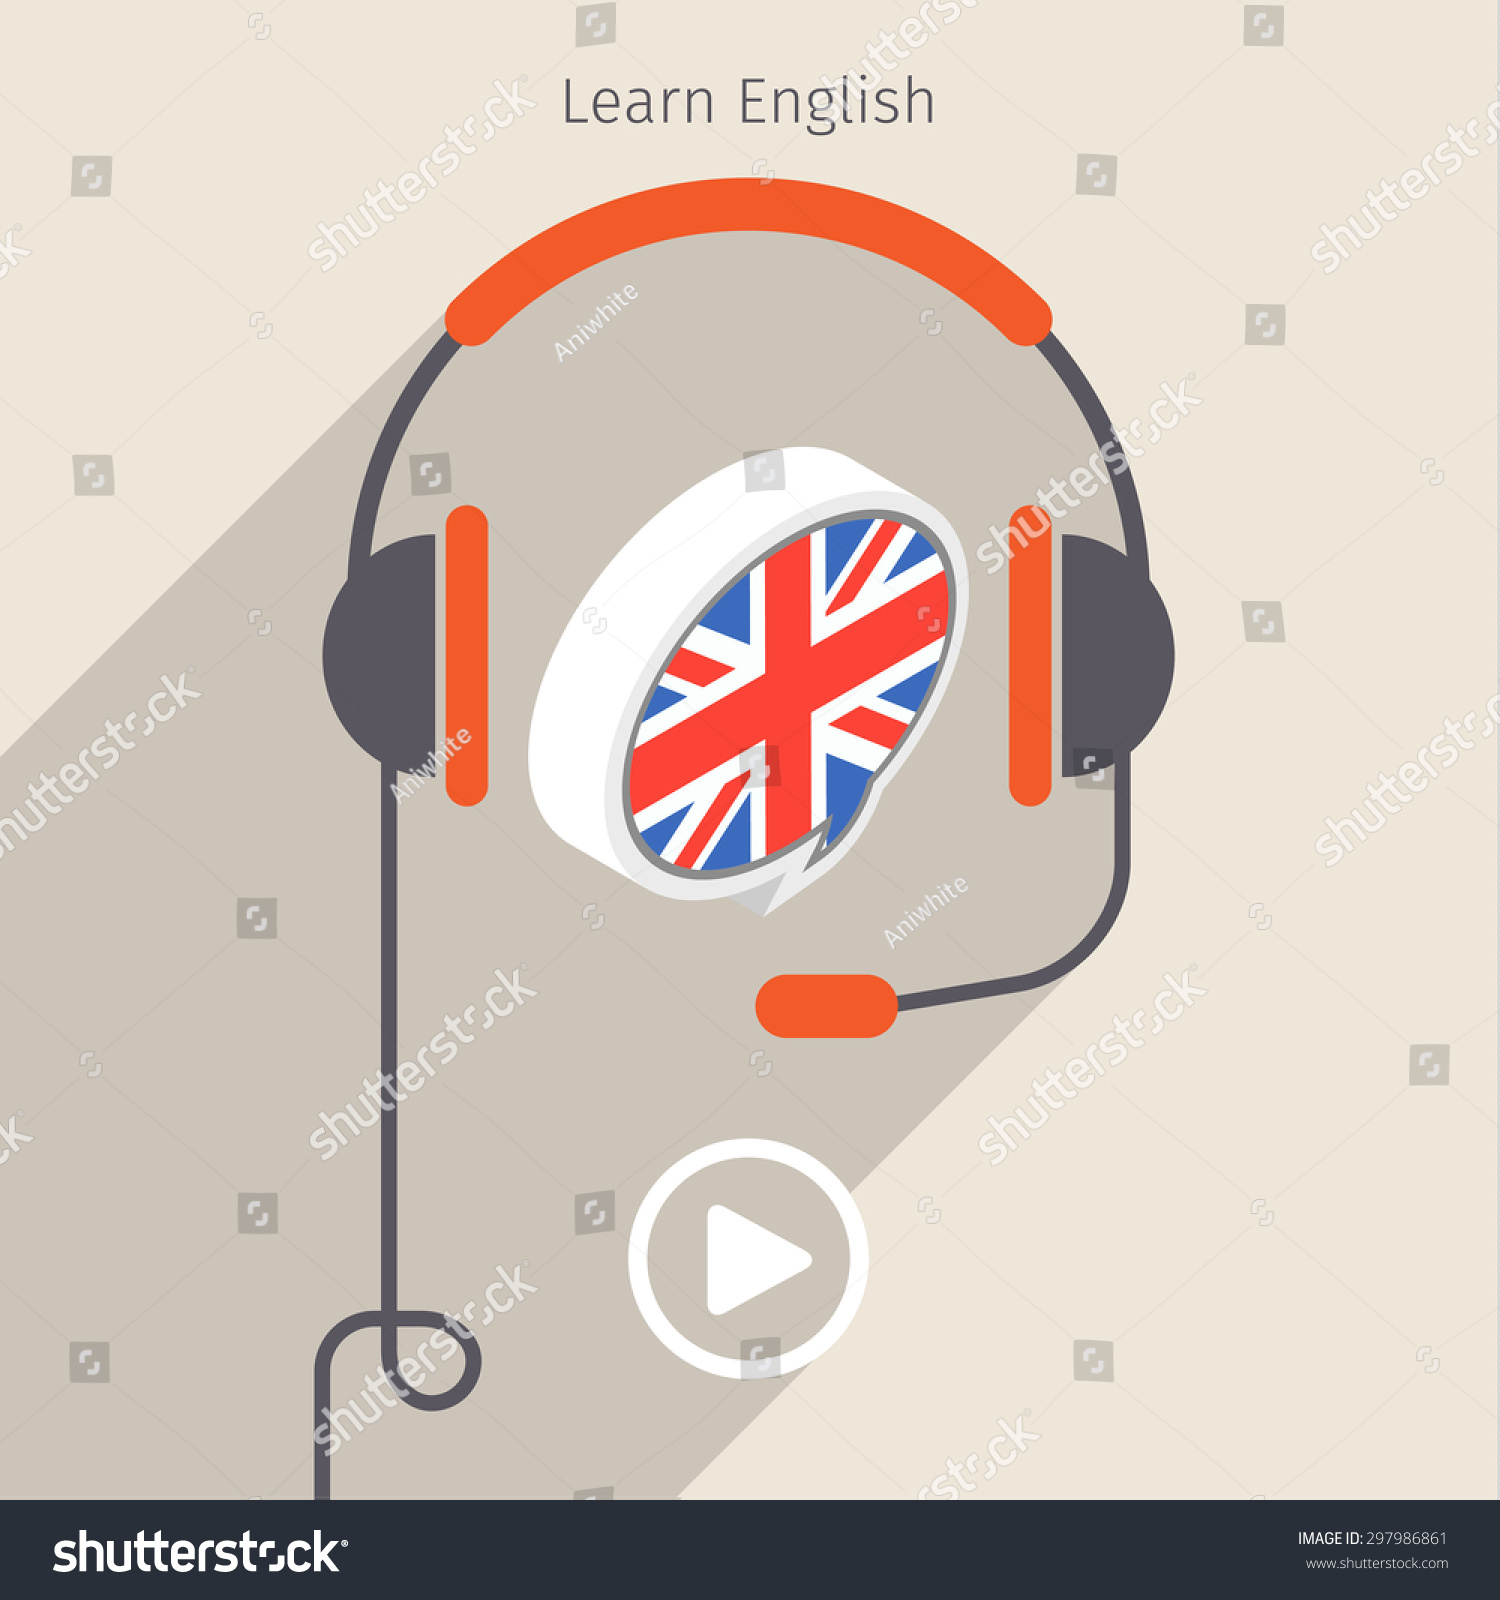 Concept Audio Book Studying Languages Book Stock Vector 297986861 ...